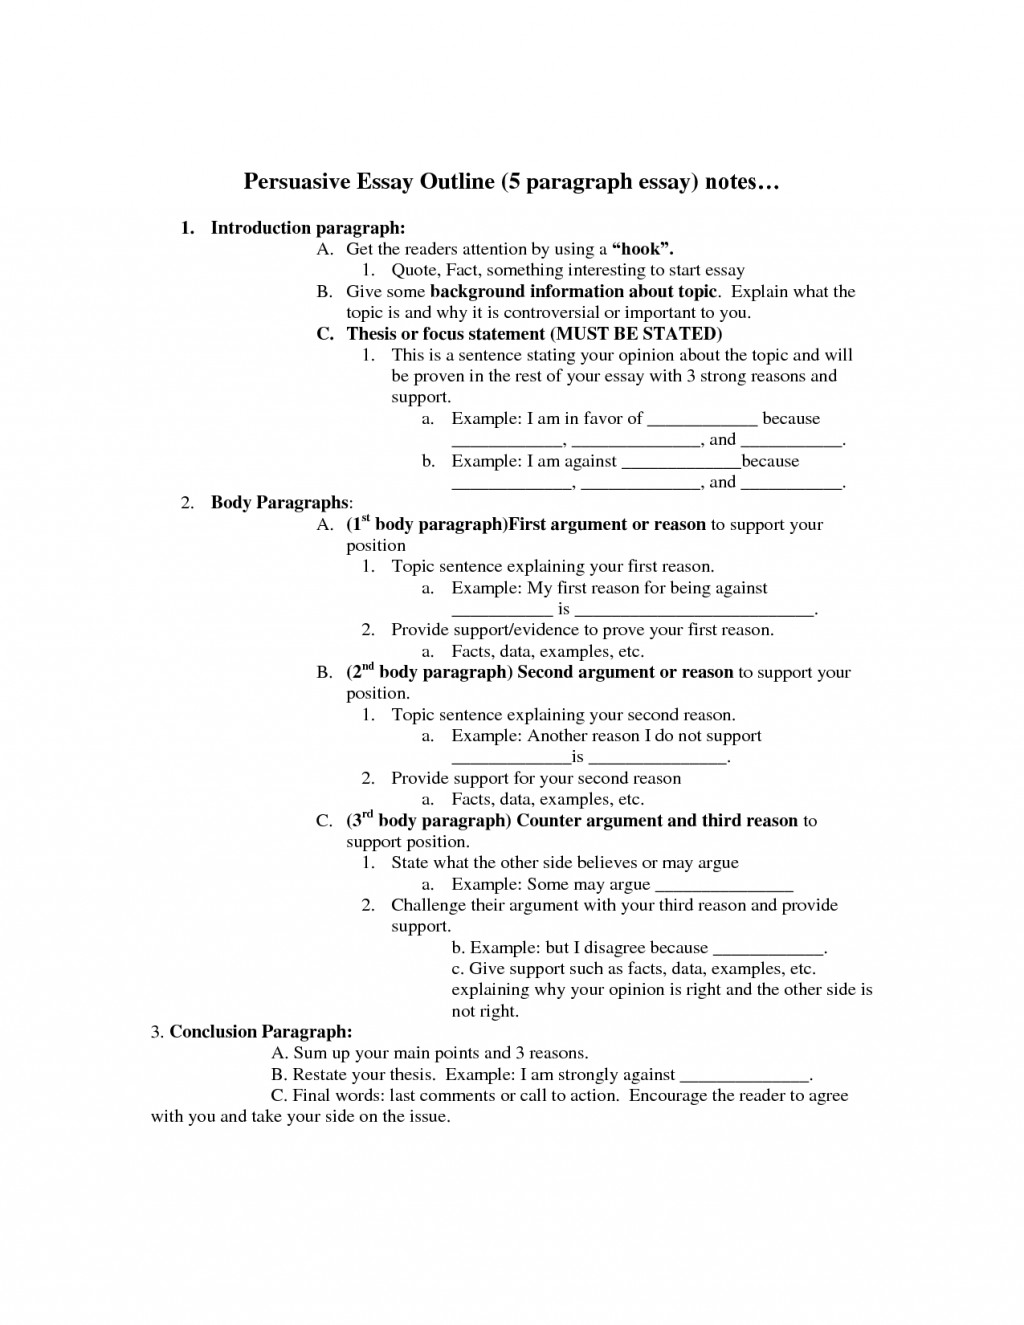 006 Persuasive Essay Outline Unbelievable 5 Paragraph Template Worksheet Pdf Large